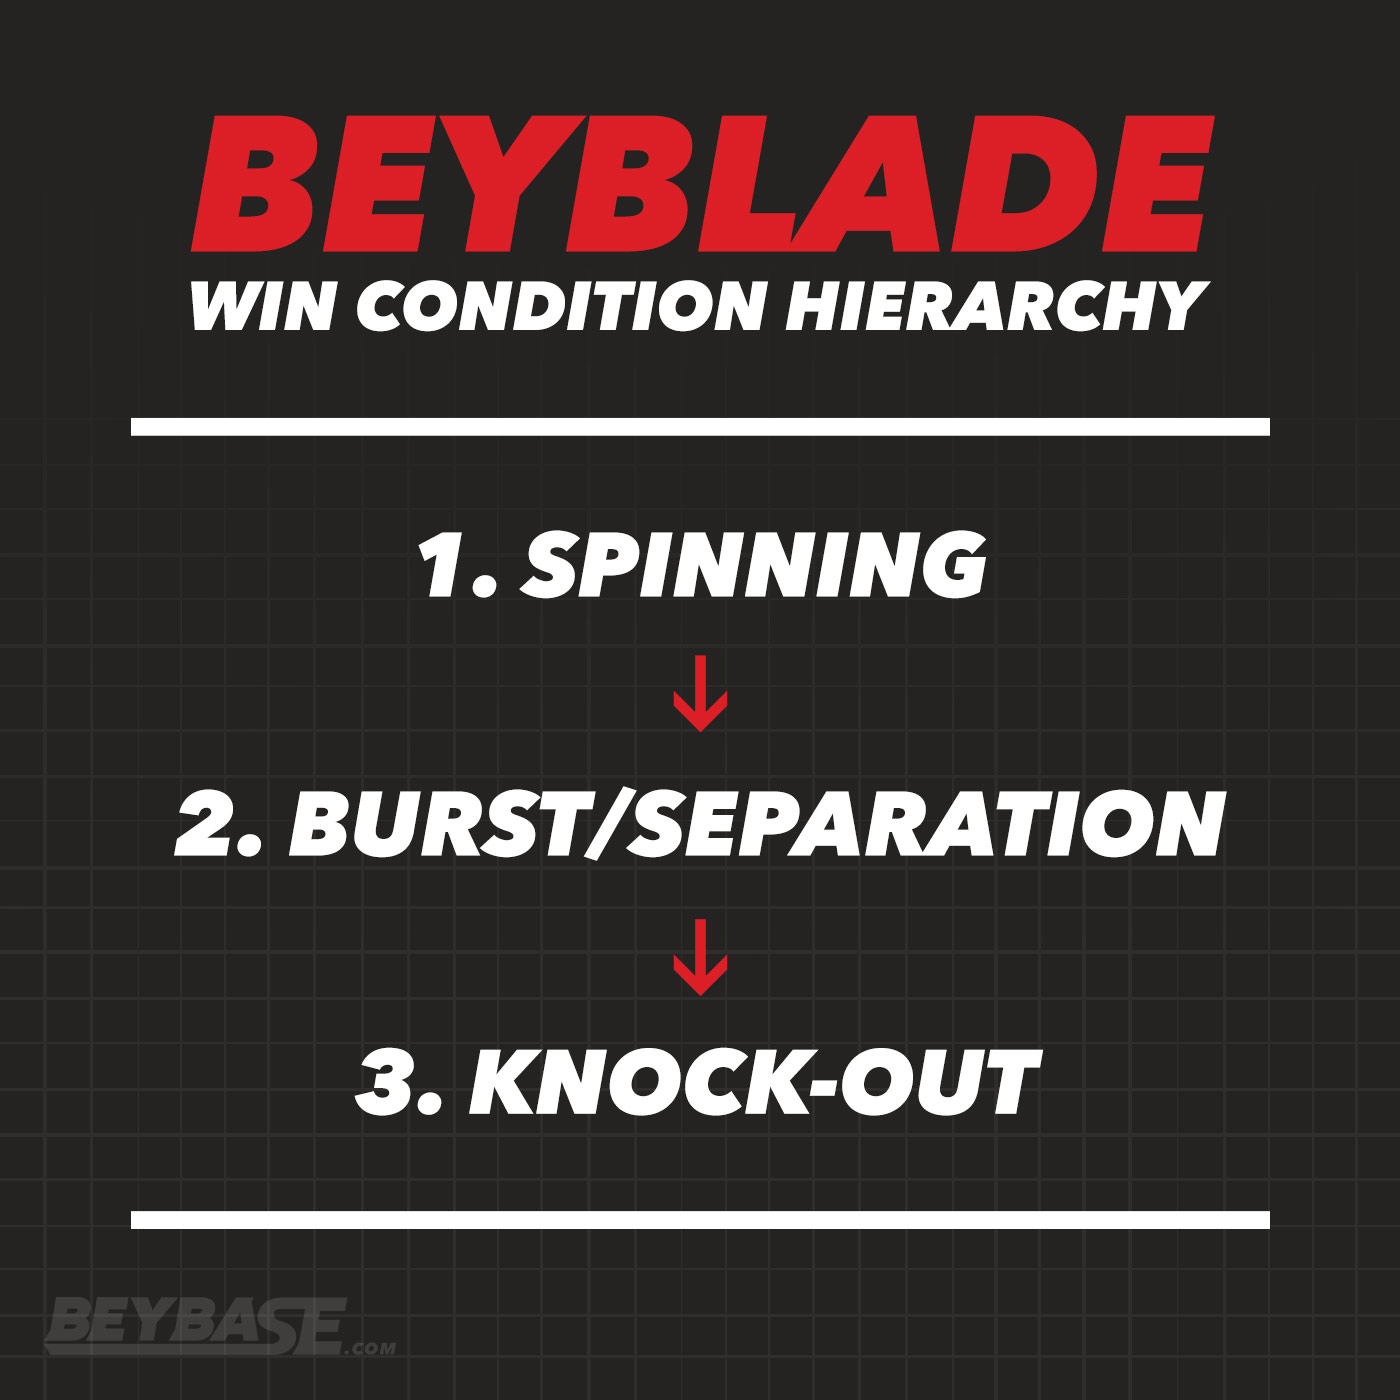 Graphic showing Beyblade win hierarchy: 1. Spinning 2. Burst/Separation 3. Knock-Out